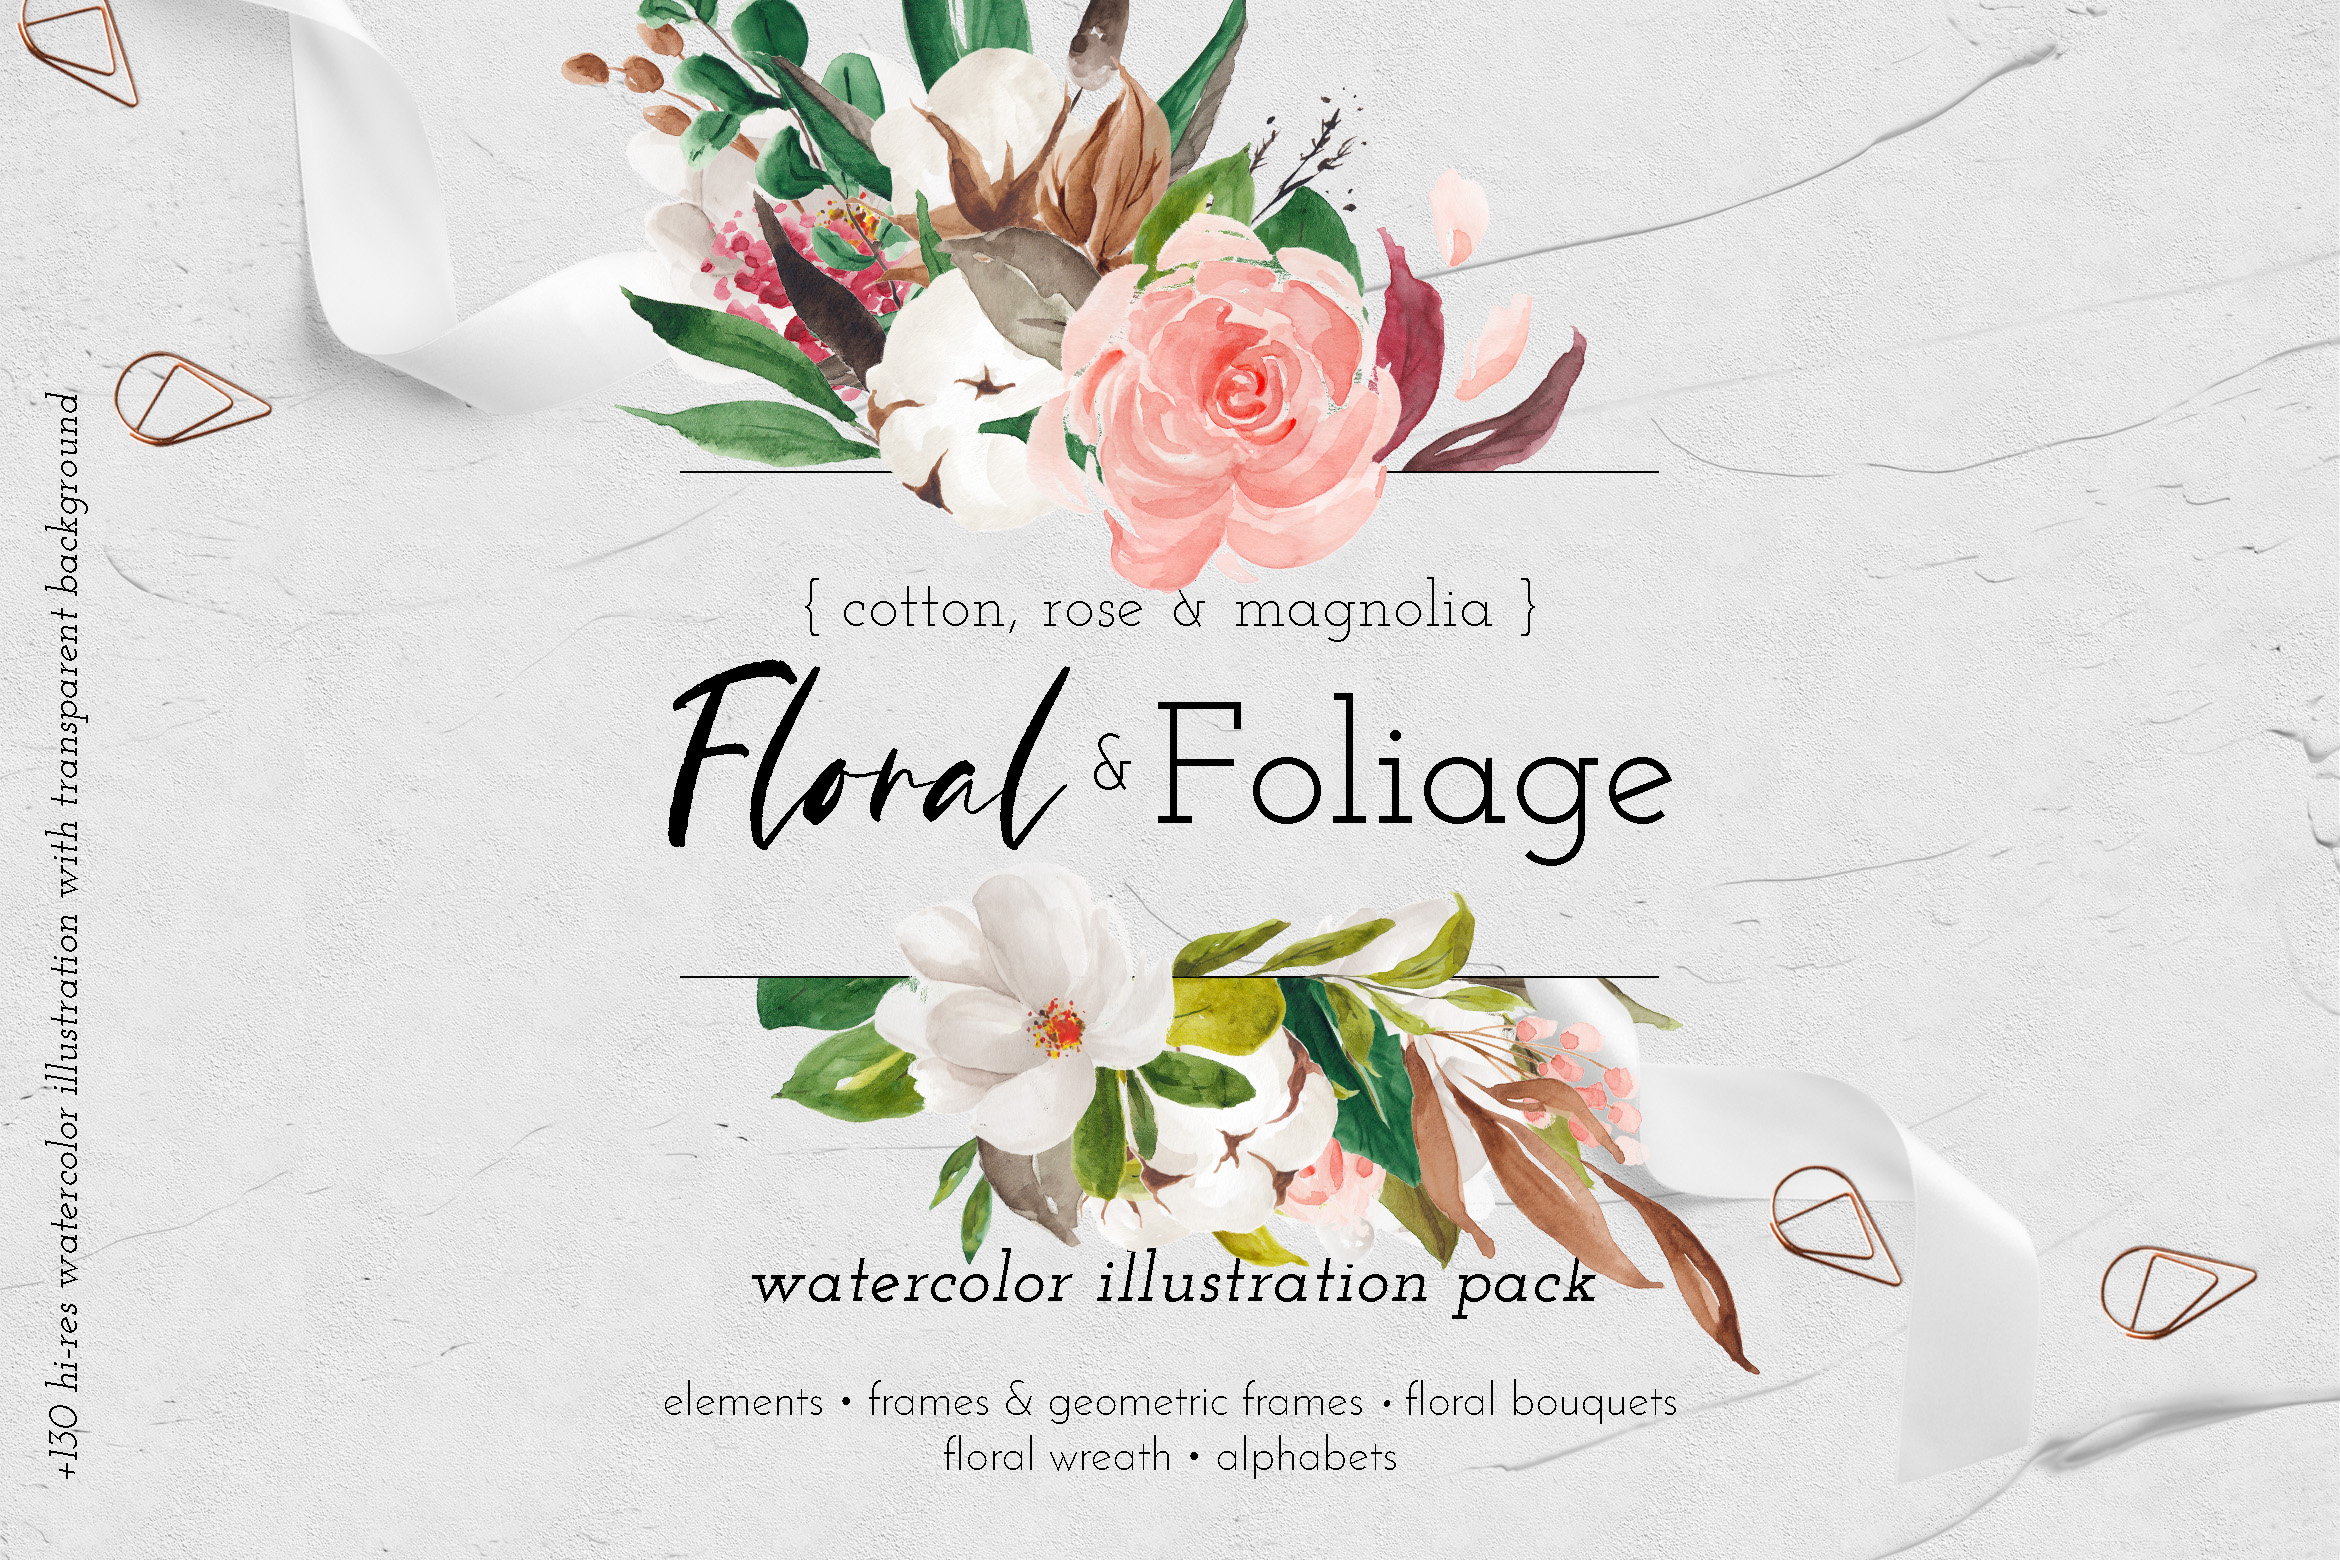 Download Free Floral Foliage Illustration Pack Graphic By Blue Robin Design for Cricut Explore, Silhouette and other cutting machines.